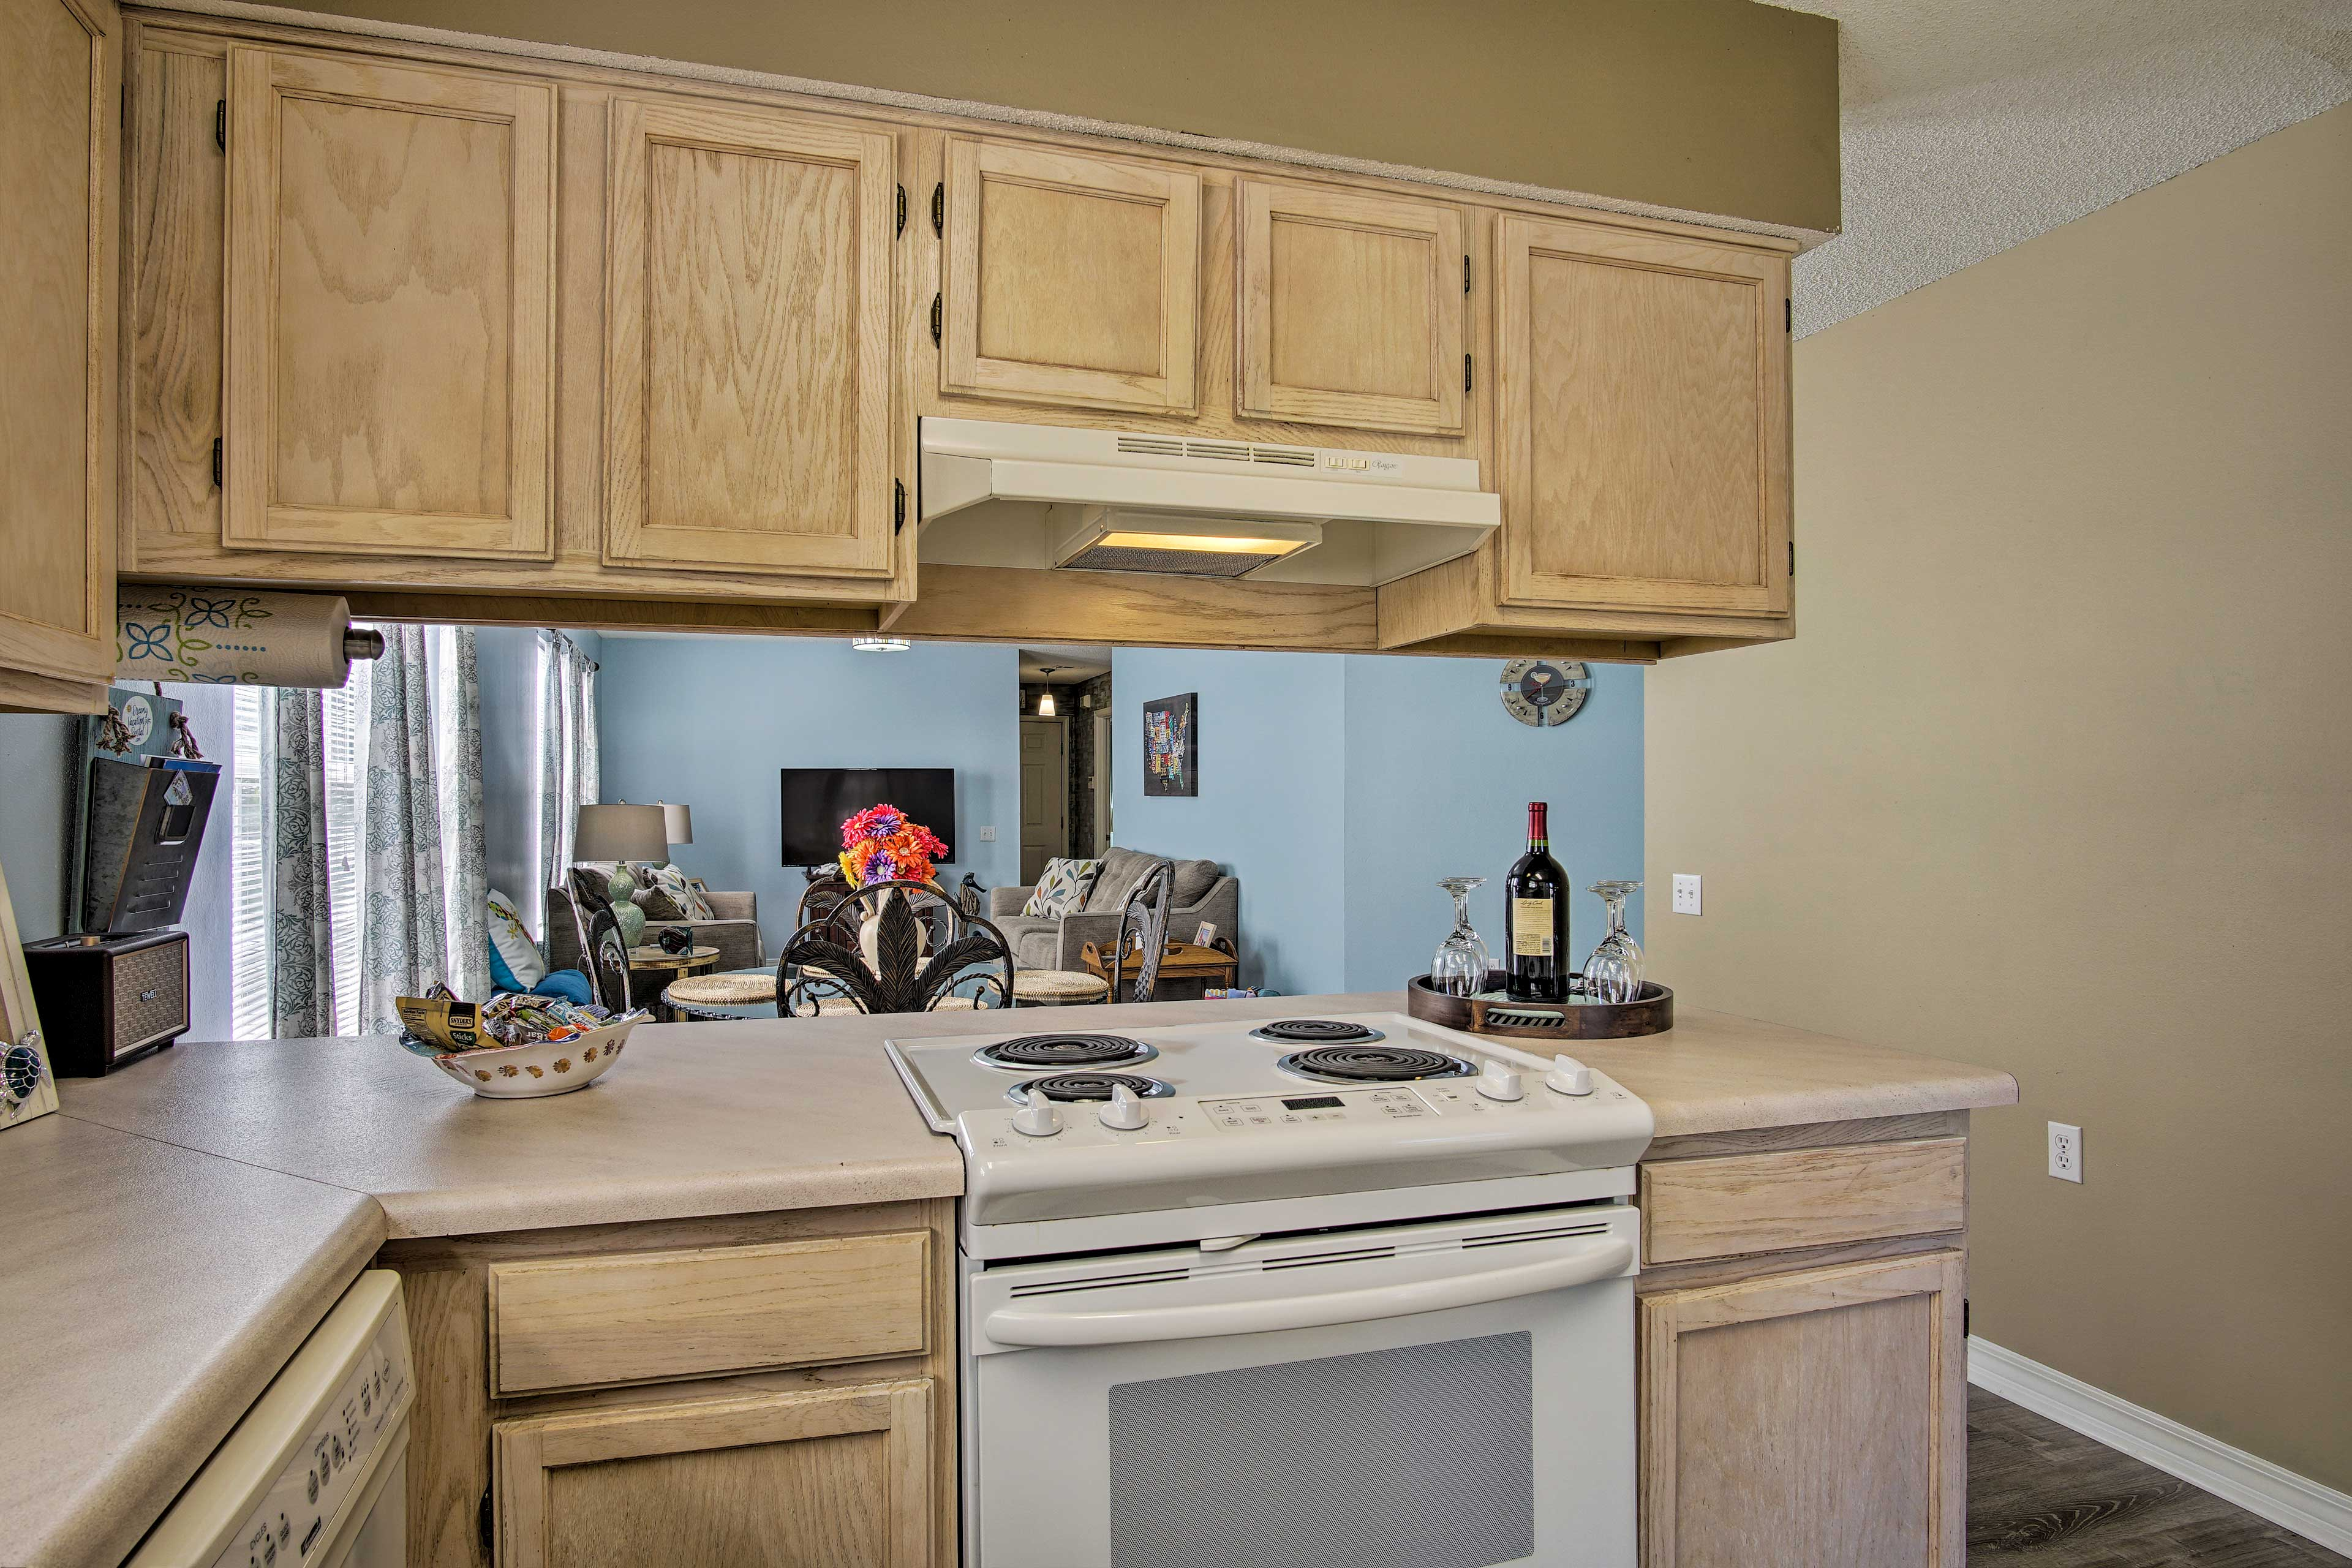 The fully equipped kitchen is stocked with all the cooking essentials.